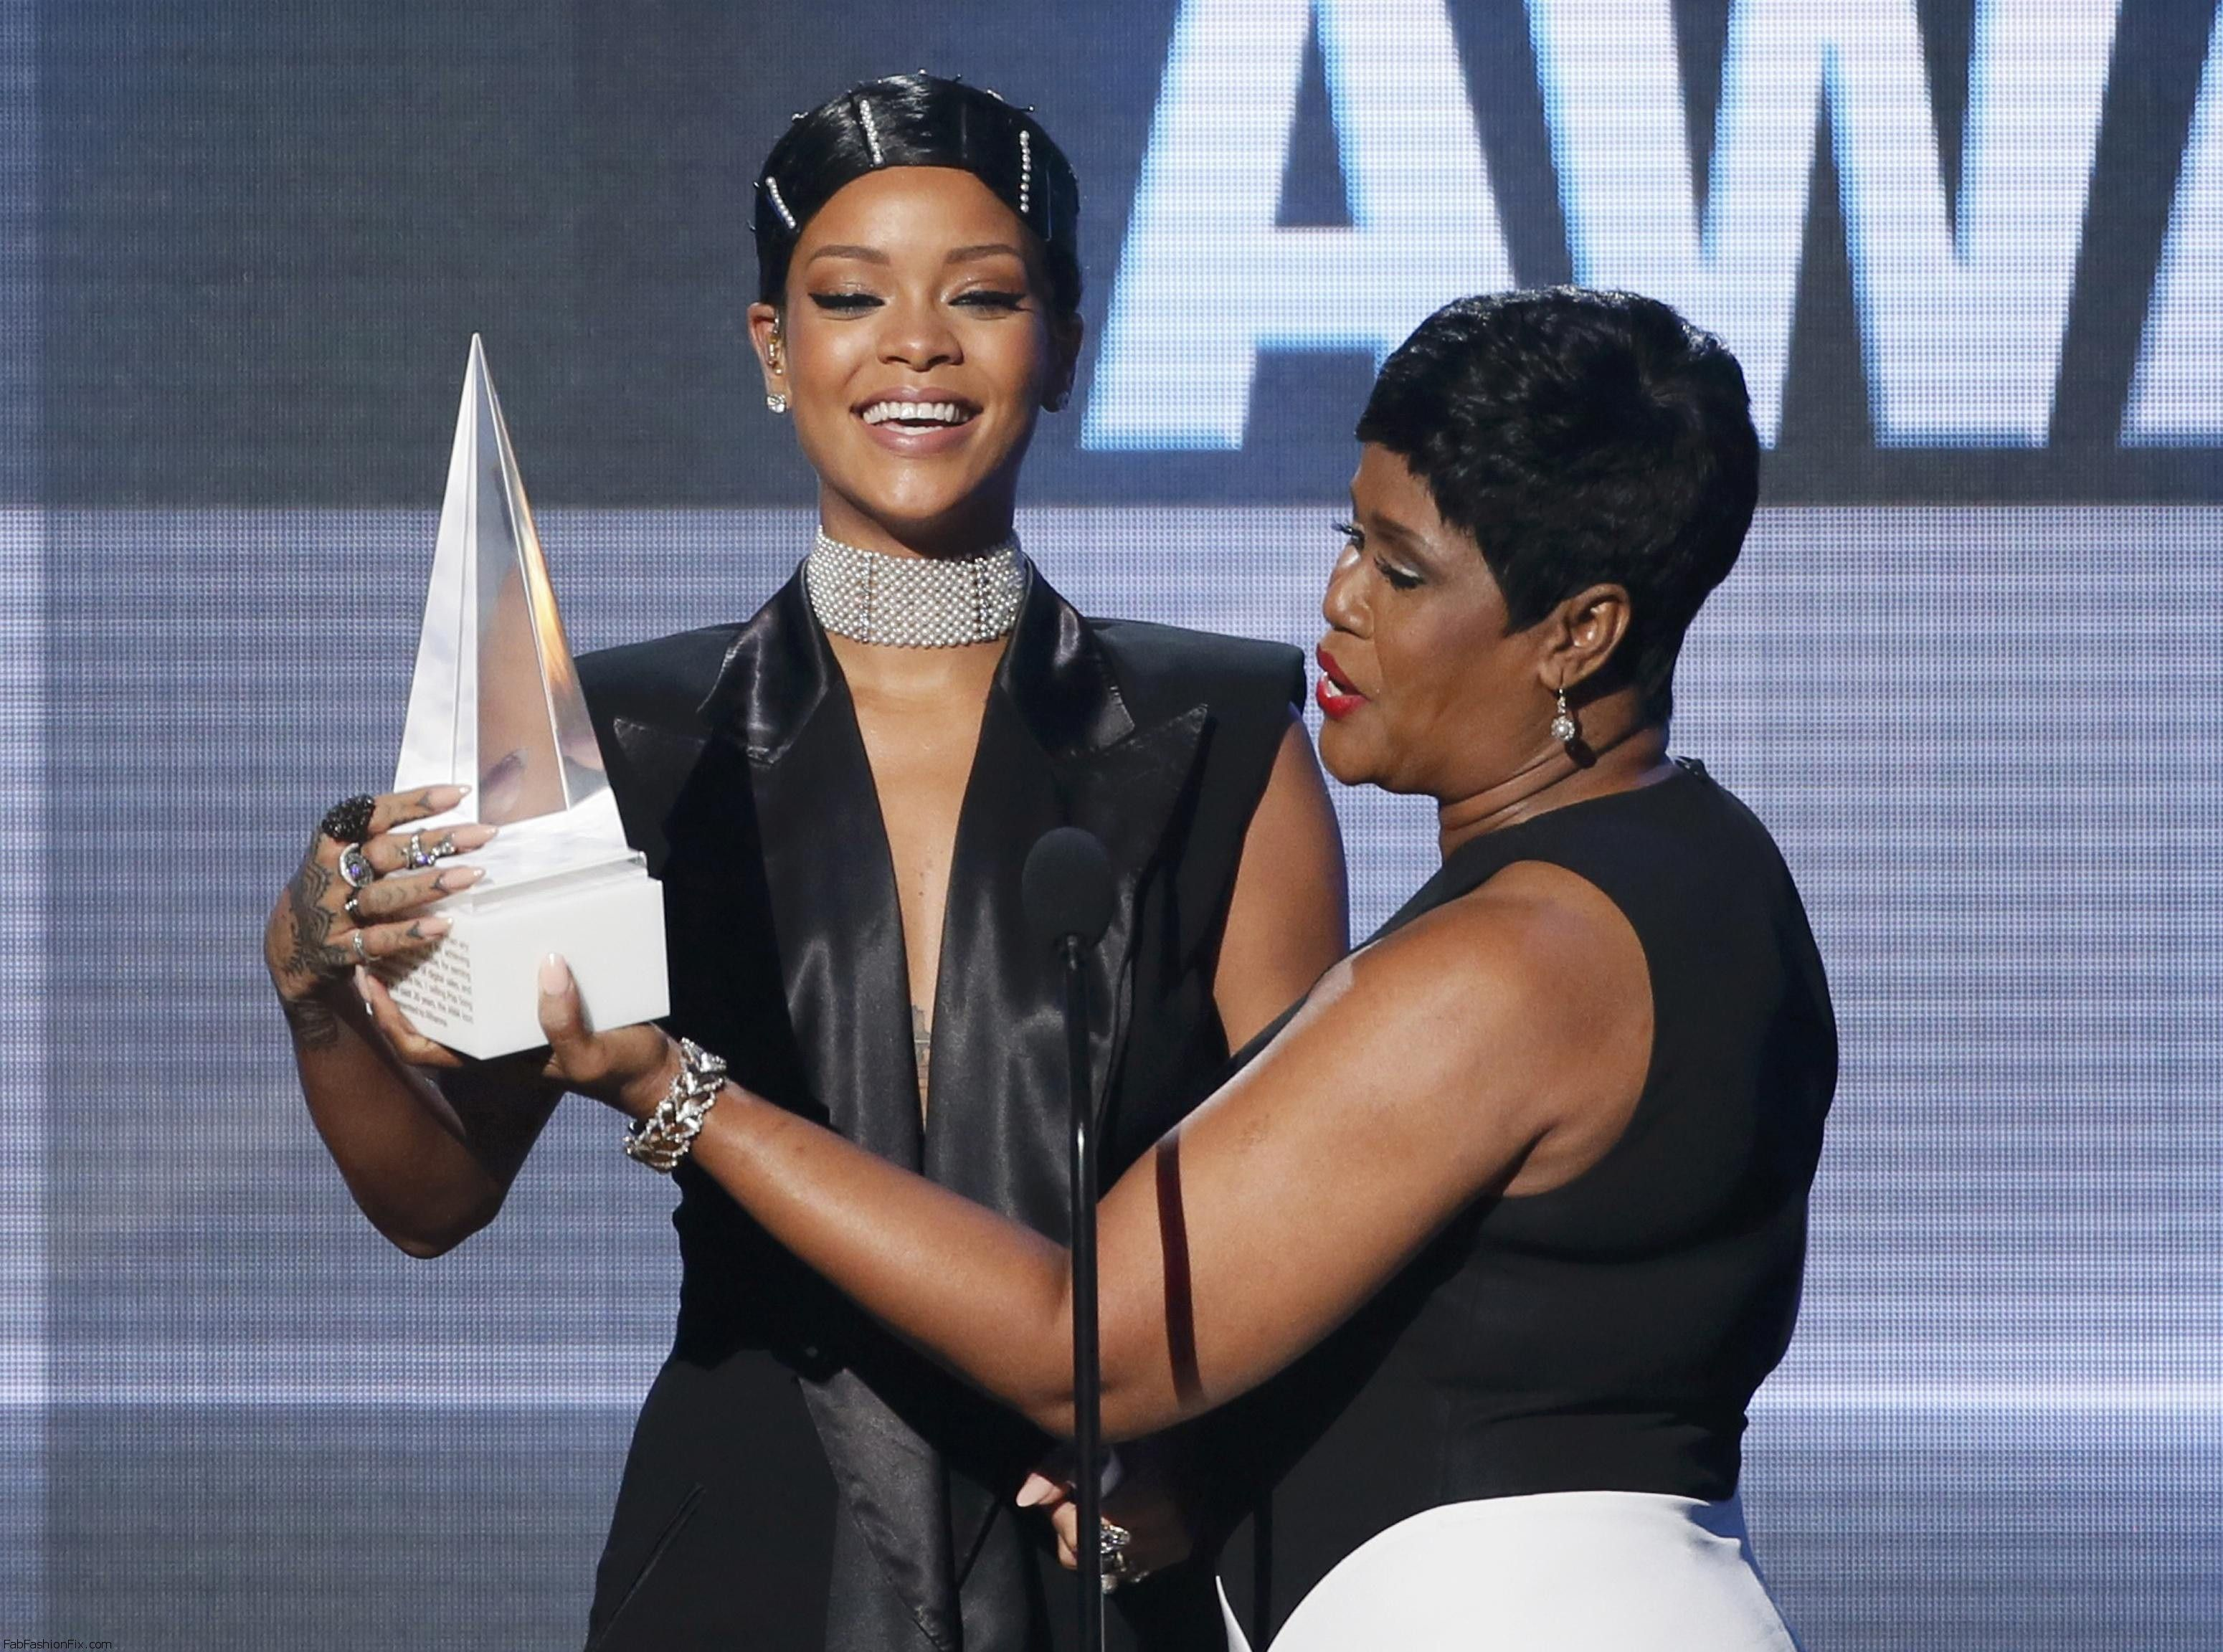 Rihanna_accepts_the_Icon_Award_from_her_mother_Monica_Fenty_at_the_41st_American_Music_Awards_in_Los_Angeles_24.11.2013_03